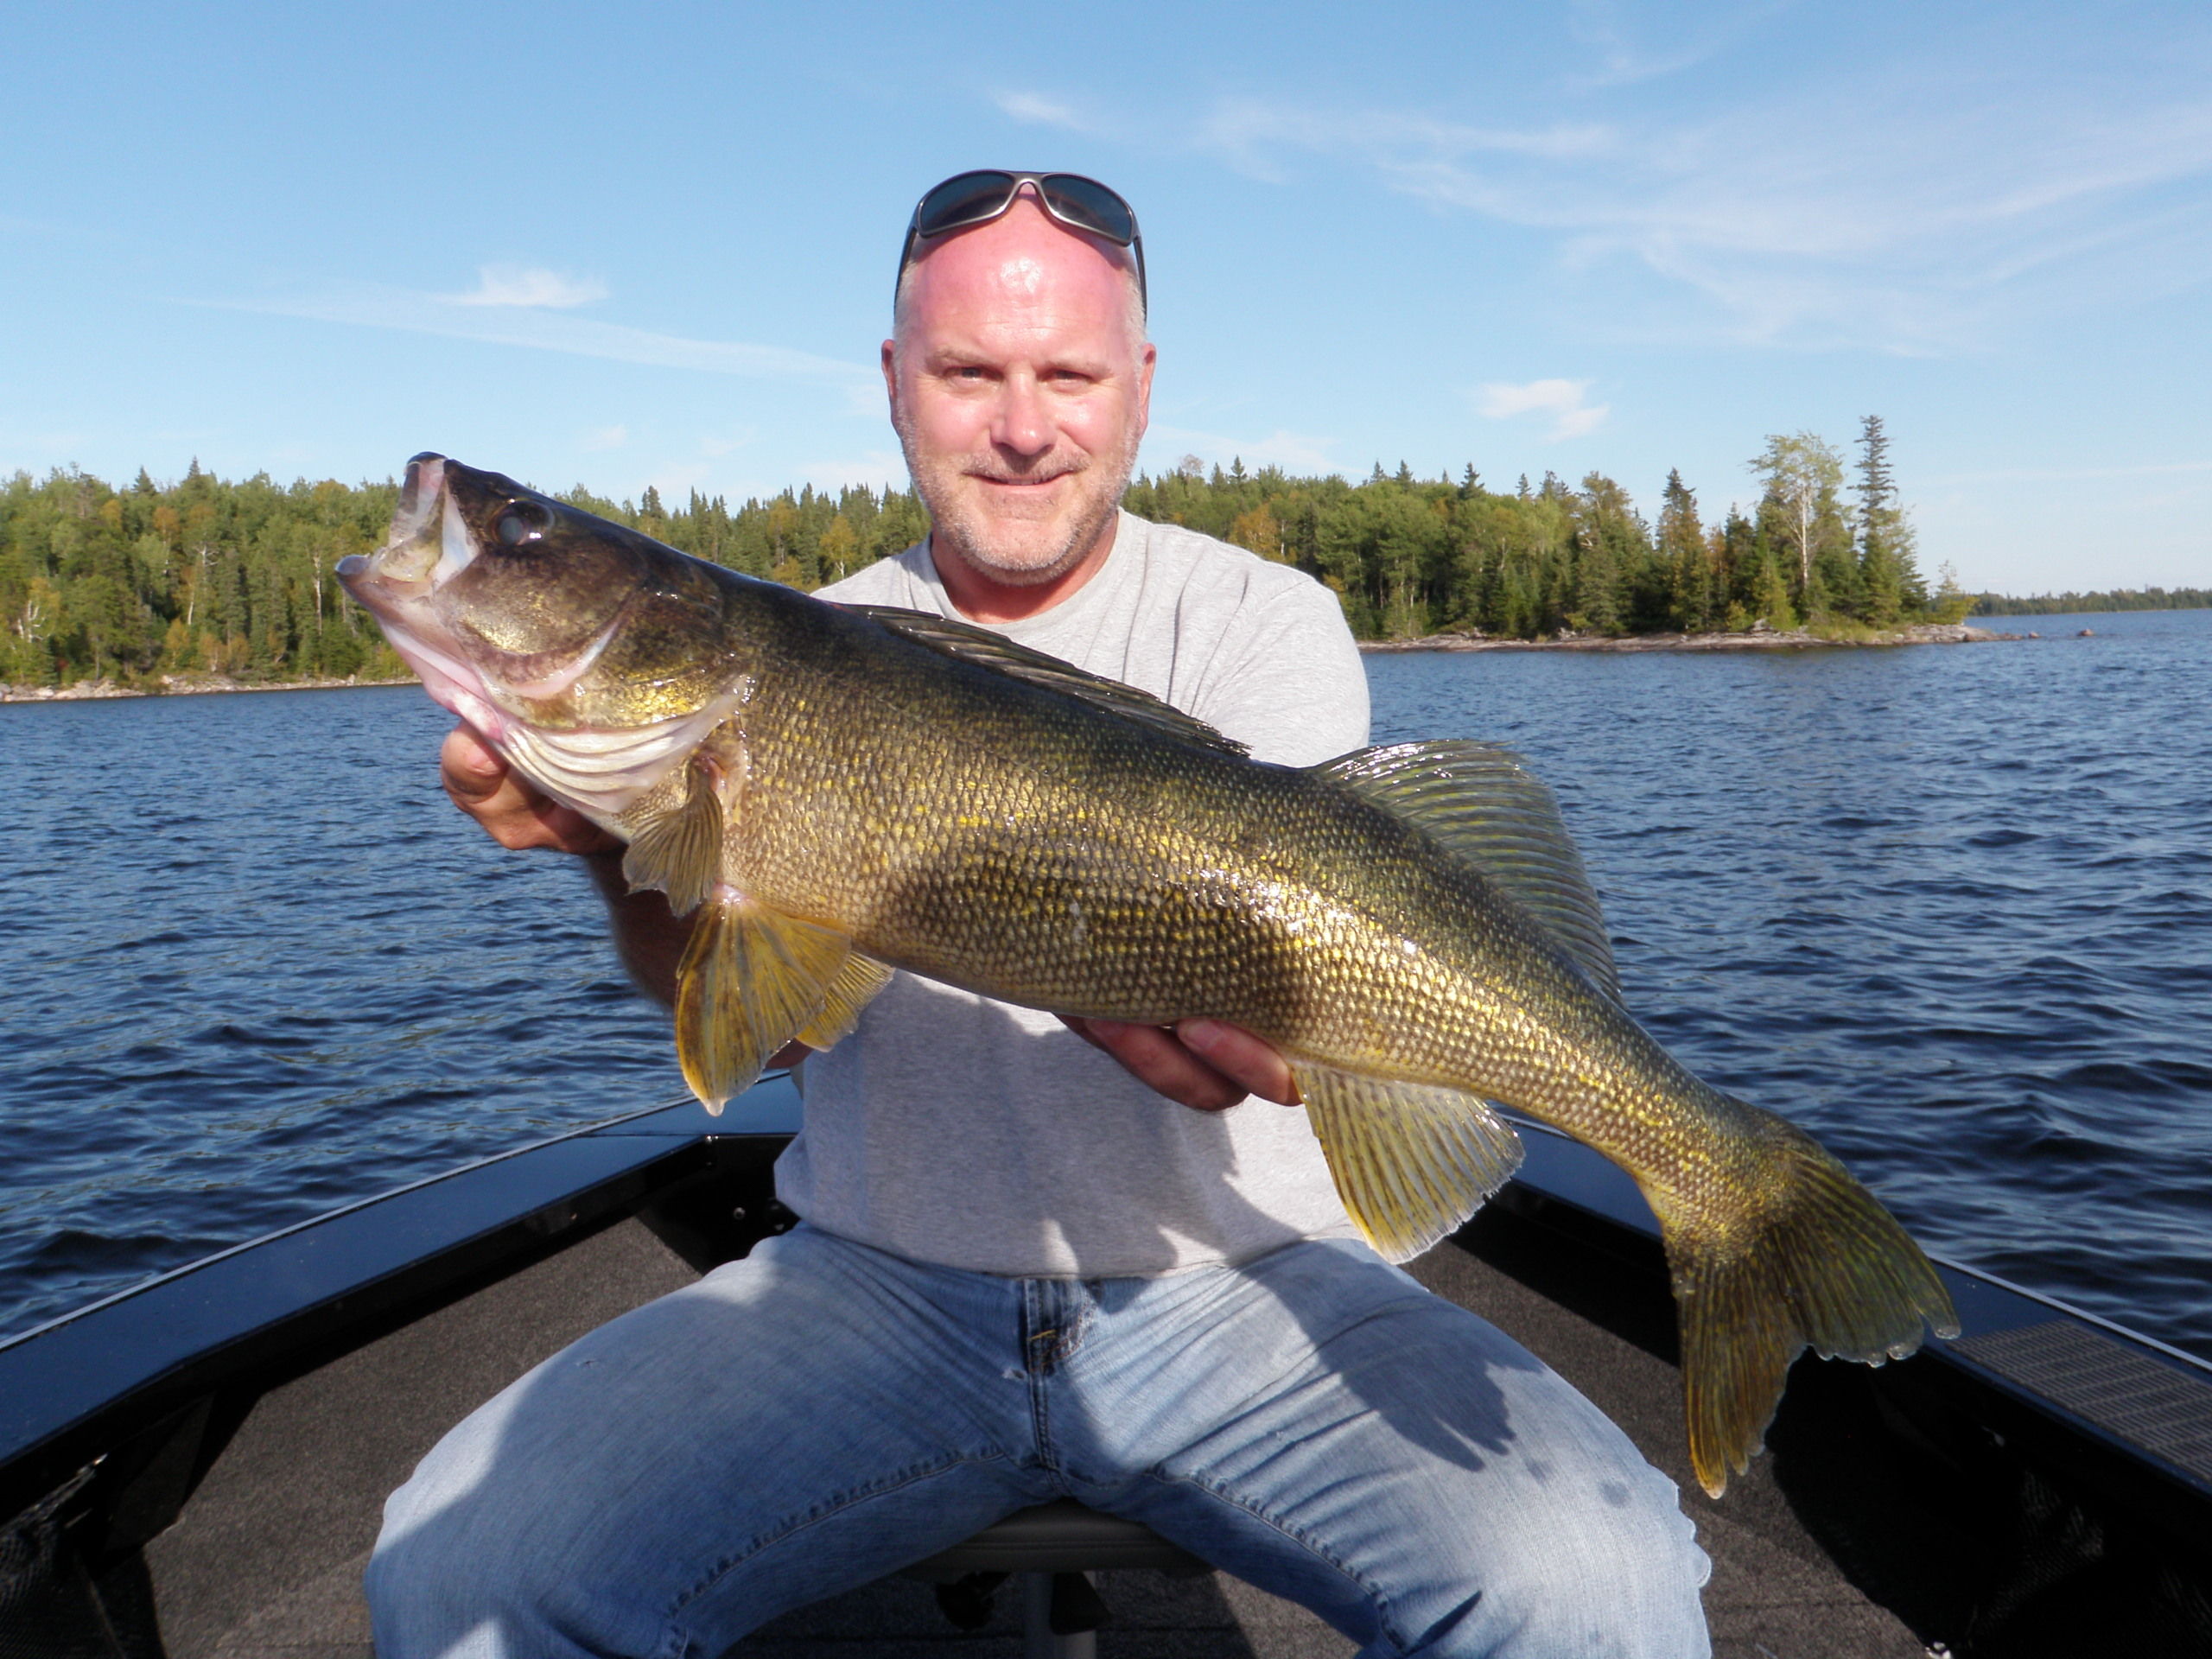 Joe geelan 27 silver water wheel lodge for Lac seul fishing report